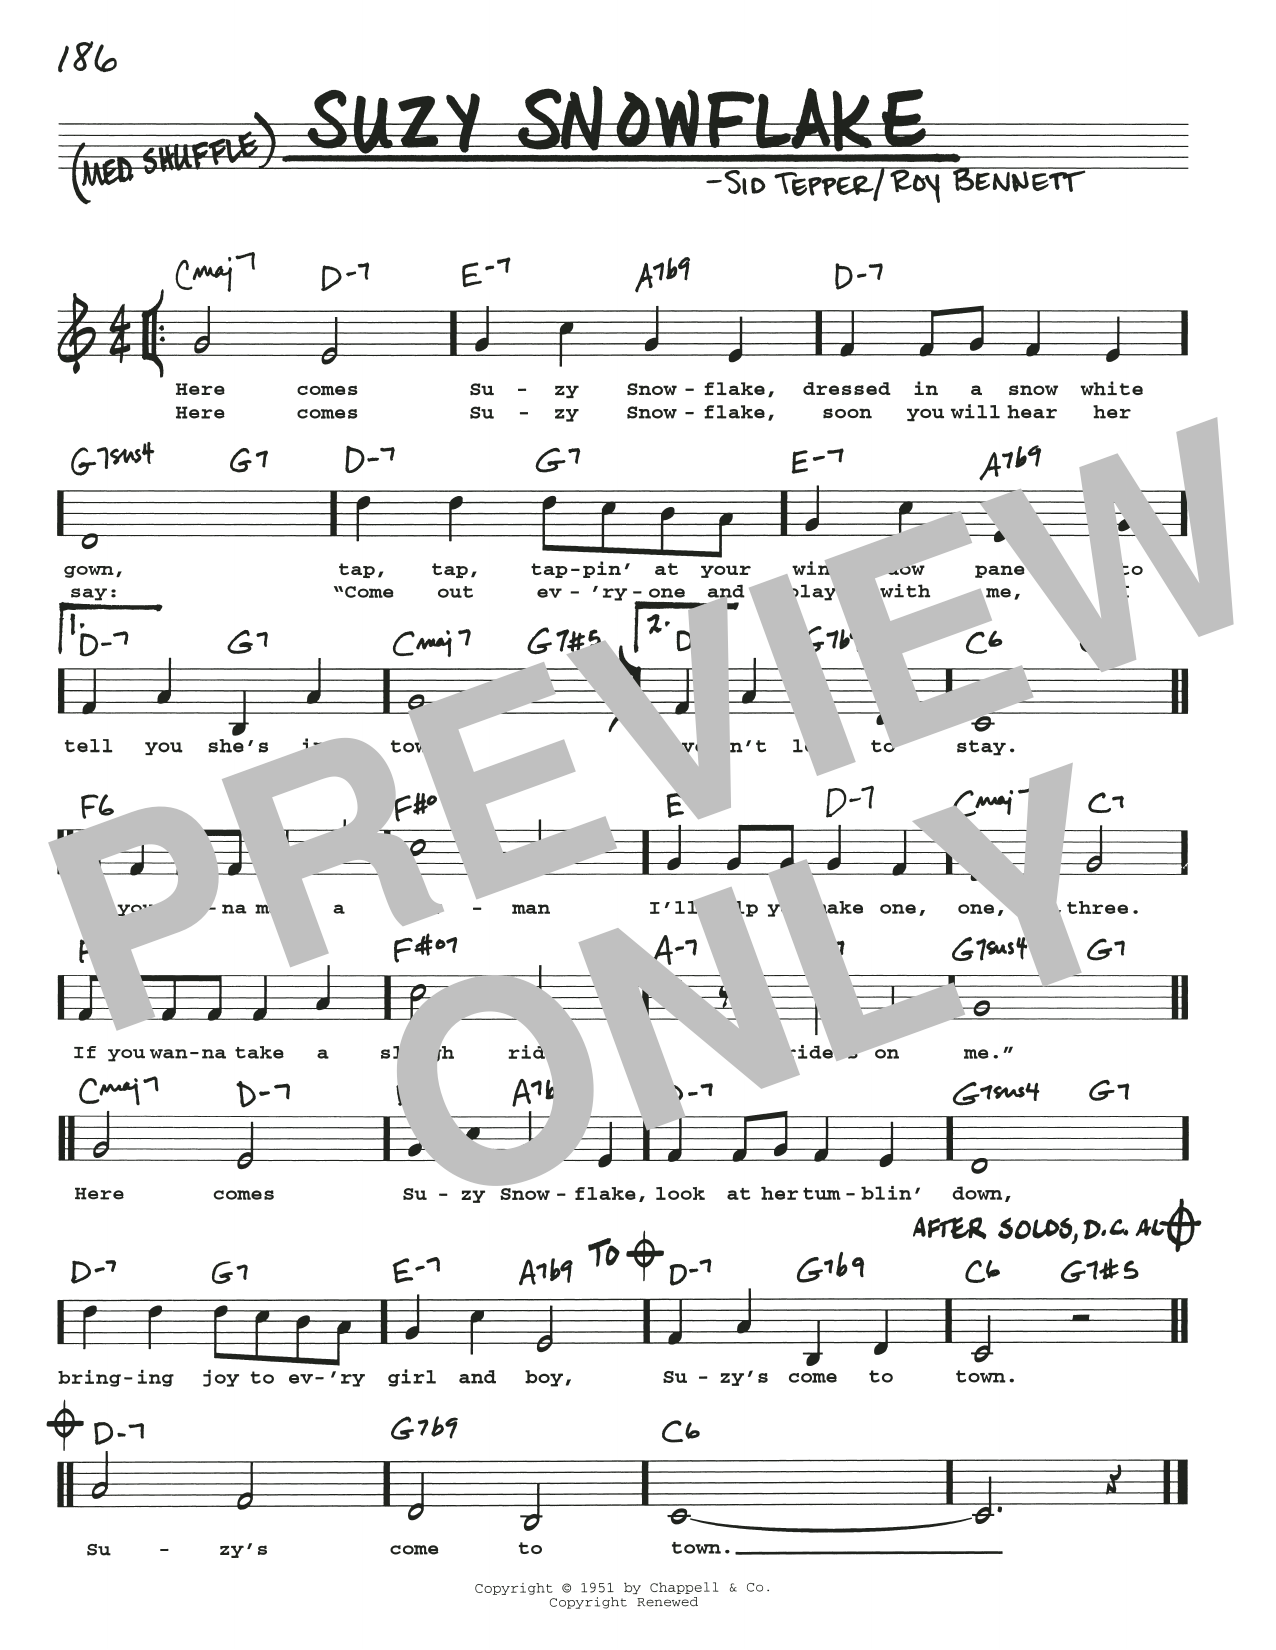 Suzy Snowflake Sheet Music